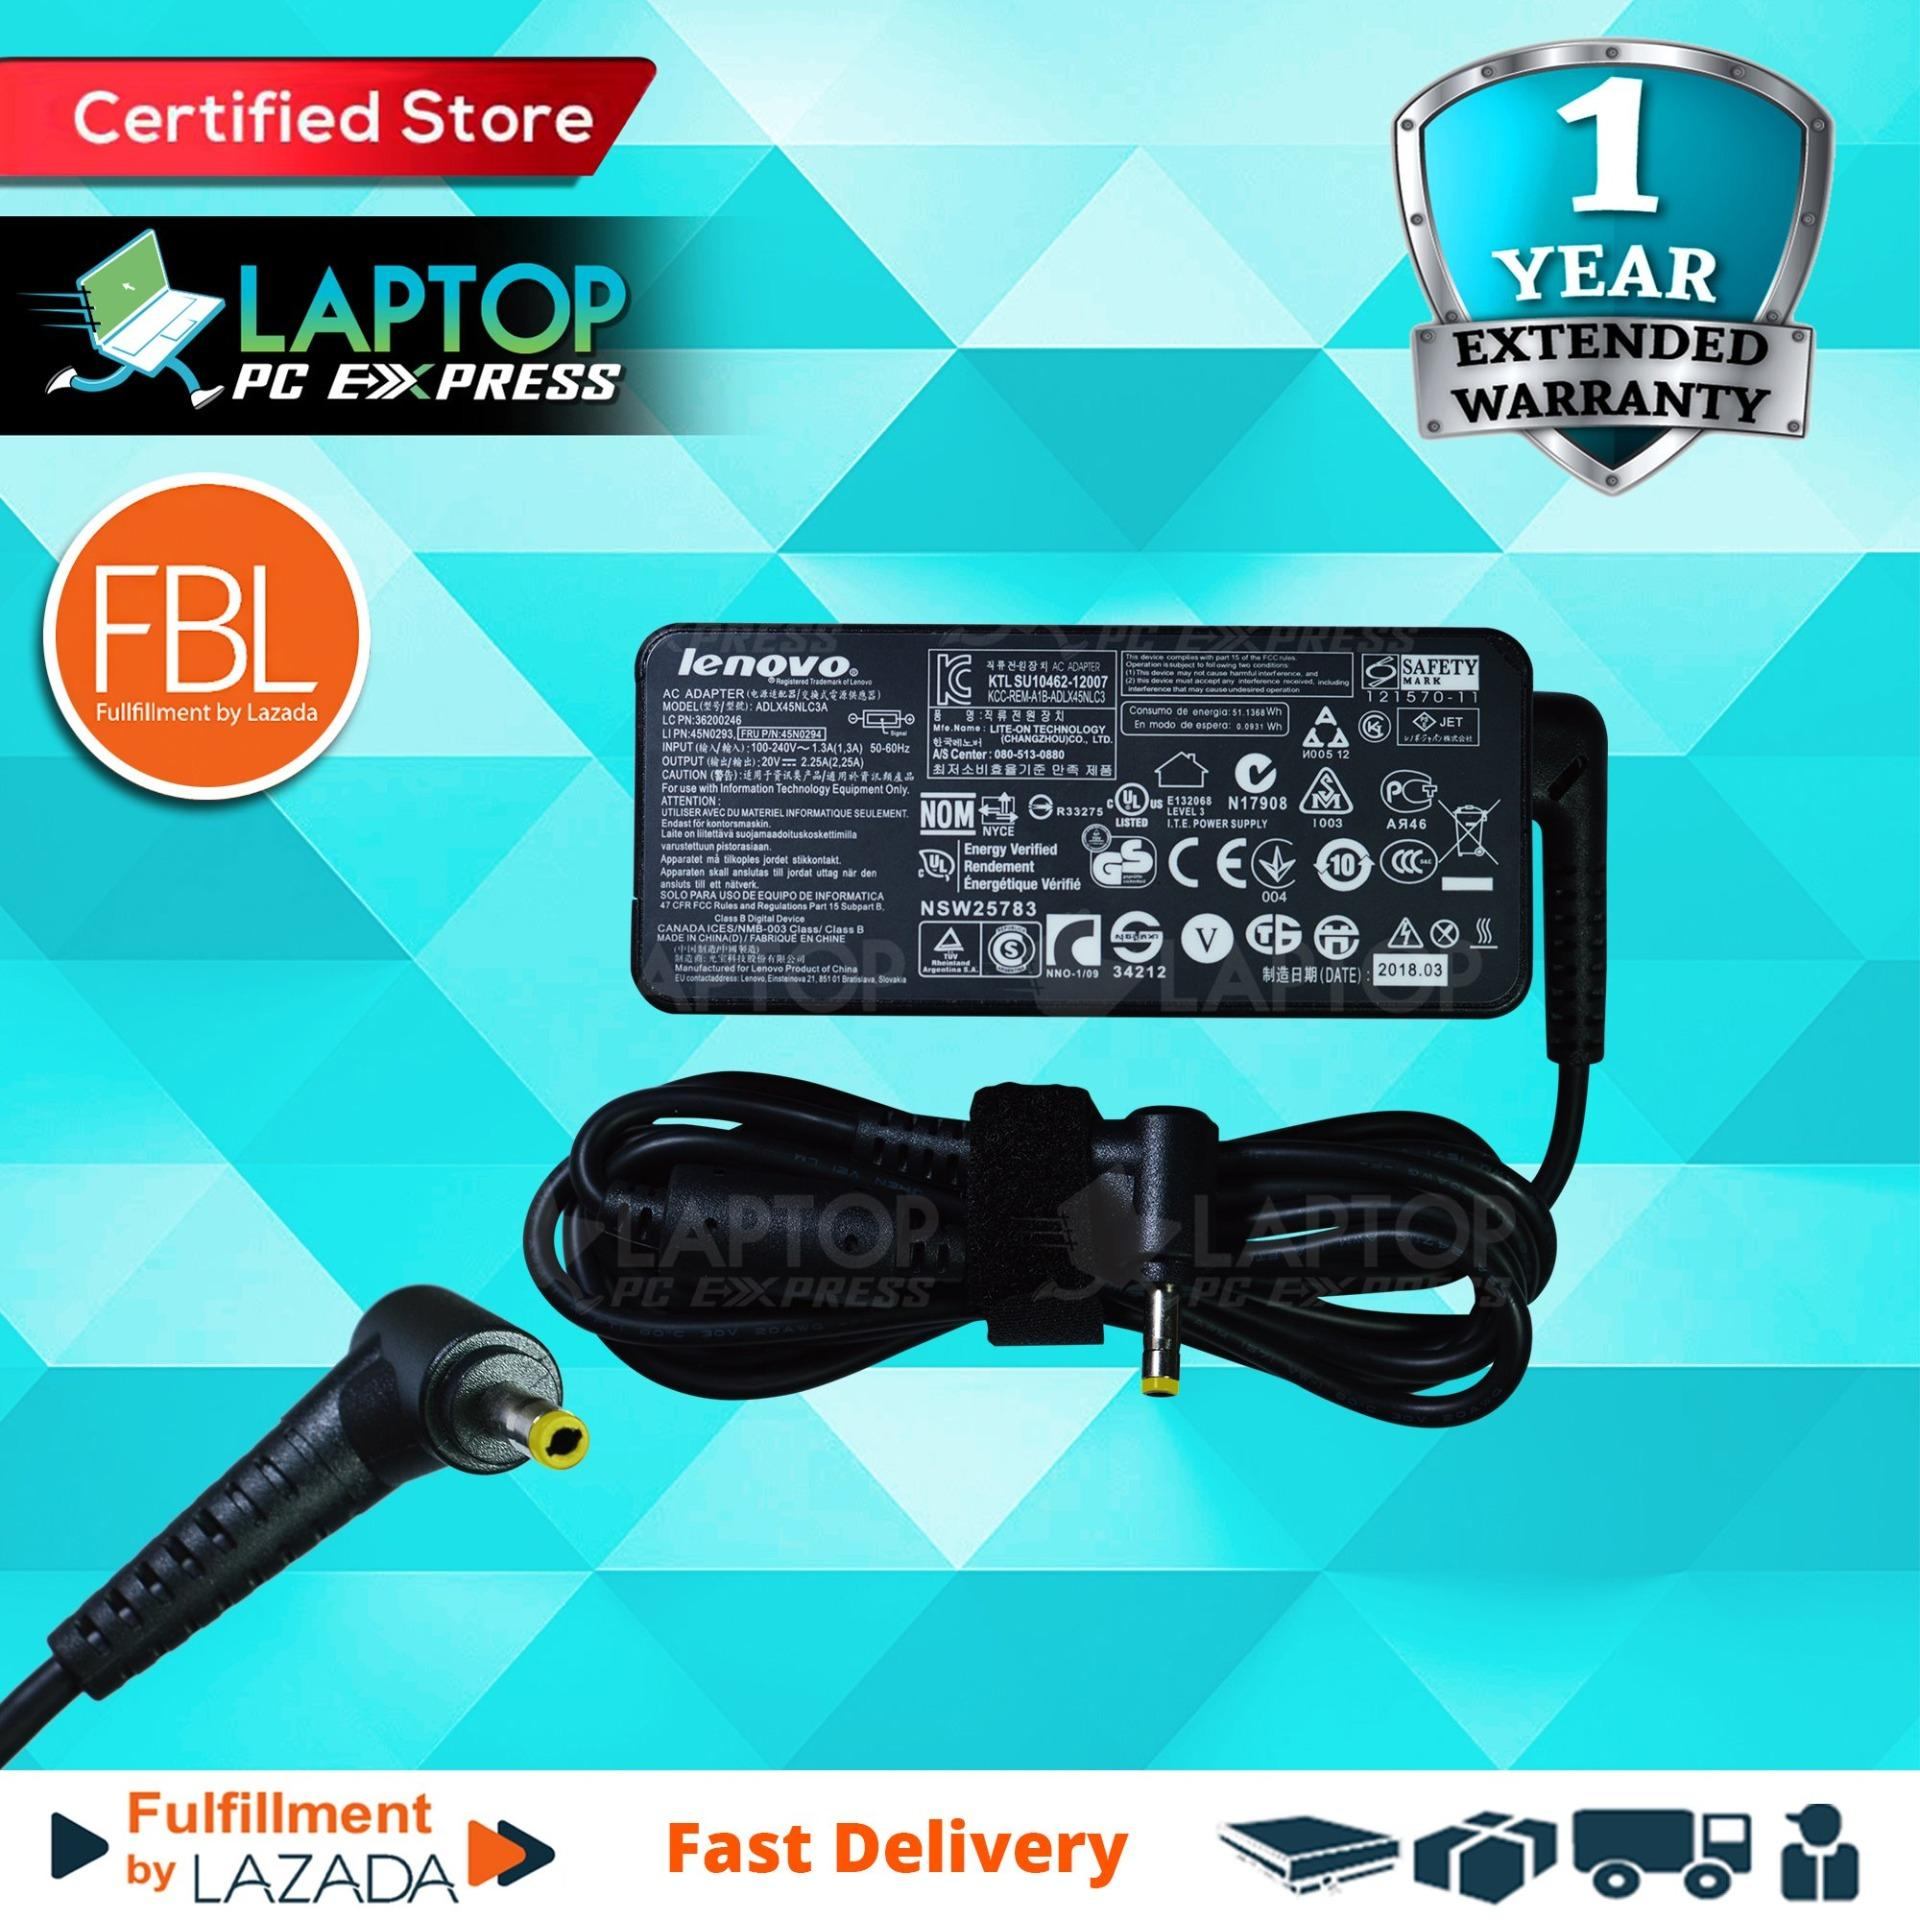 Lenovo Laptop Charger 20V 2 25A 4 0mm x 1 7mm Ideapad 100 14IBY , Ideapad  100 15IBY , Lenovo IdeaPad 110 710 510 310 YOGA 710 510 Flex 4 11 14 15